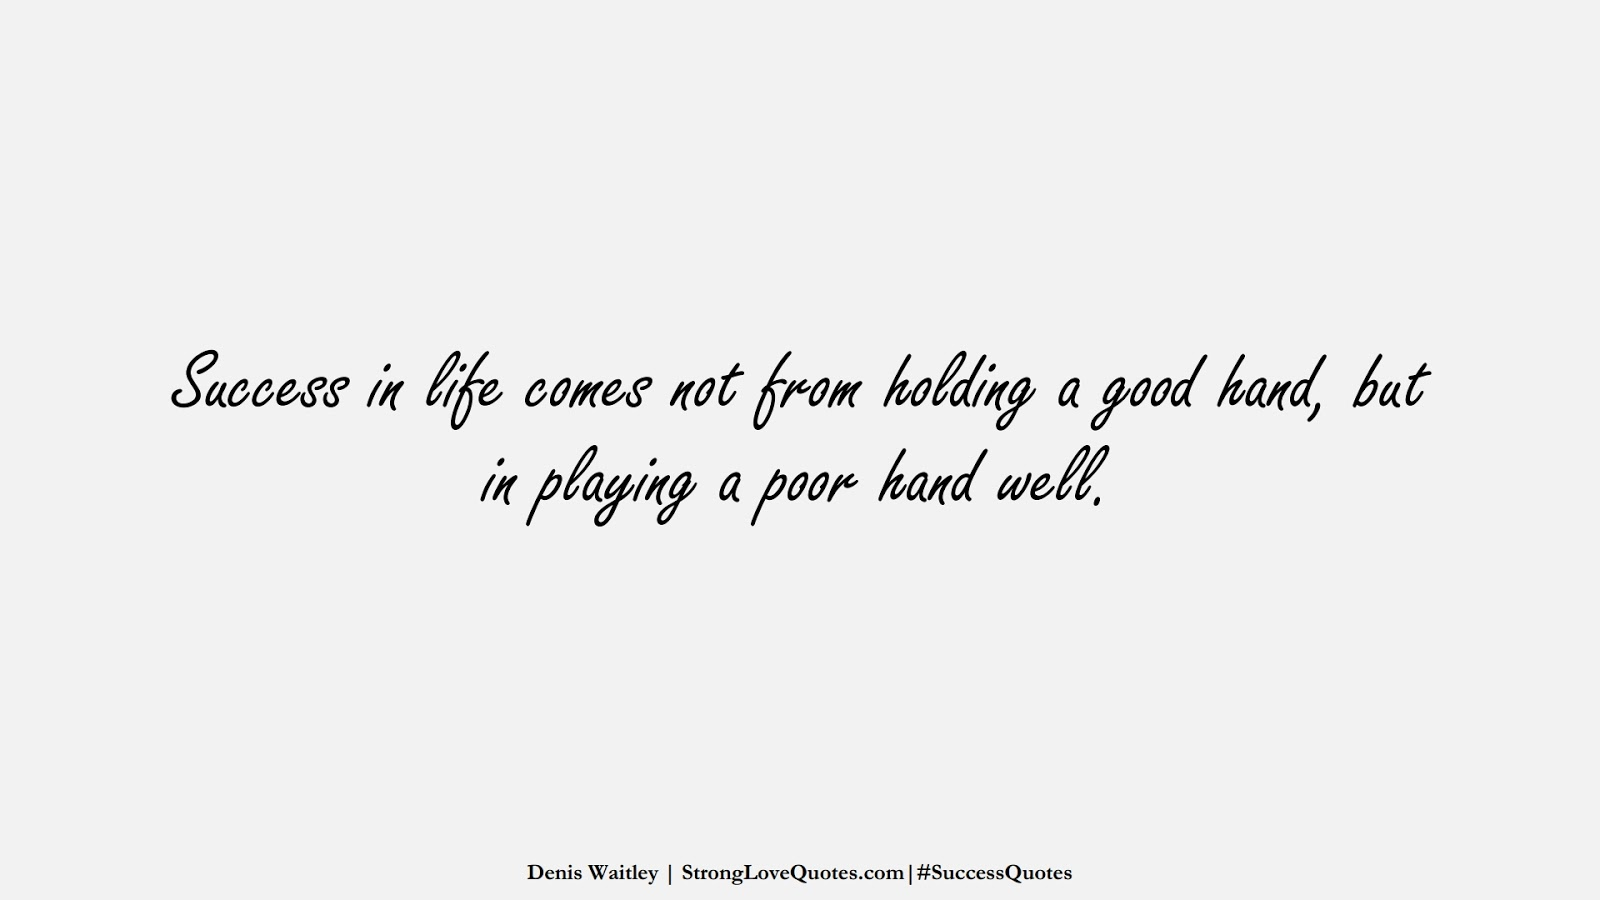 Success in life comes not from holding a good hand, but in playing a poor hand well. (Denis Waitley);  #SuccessQuotes